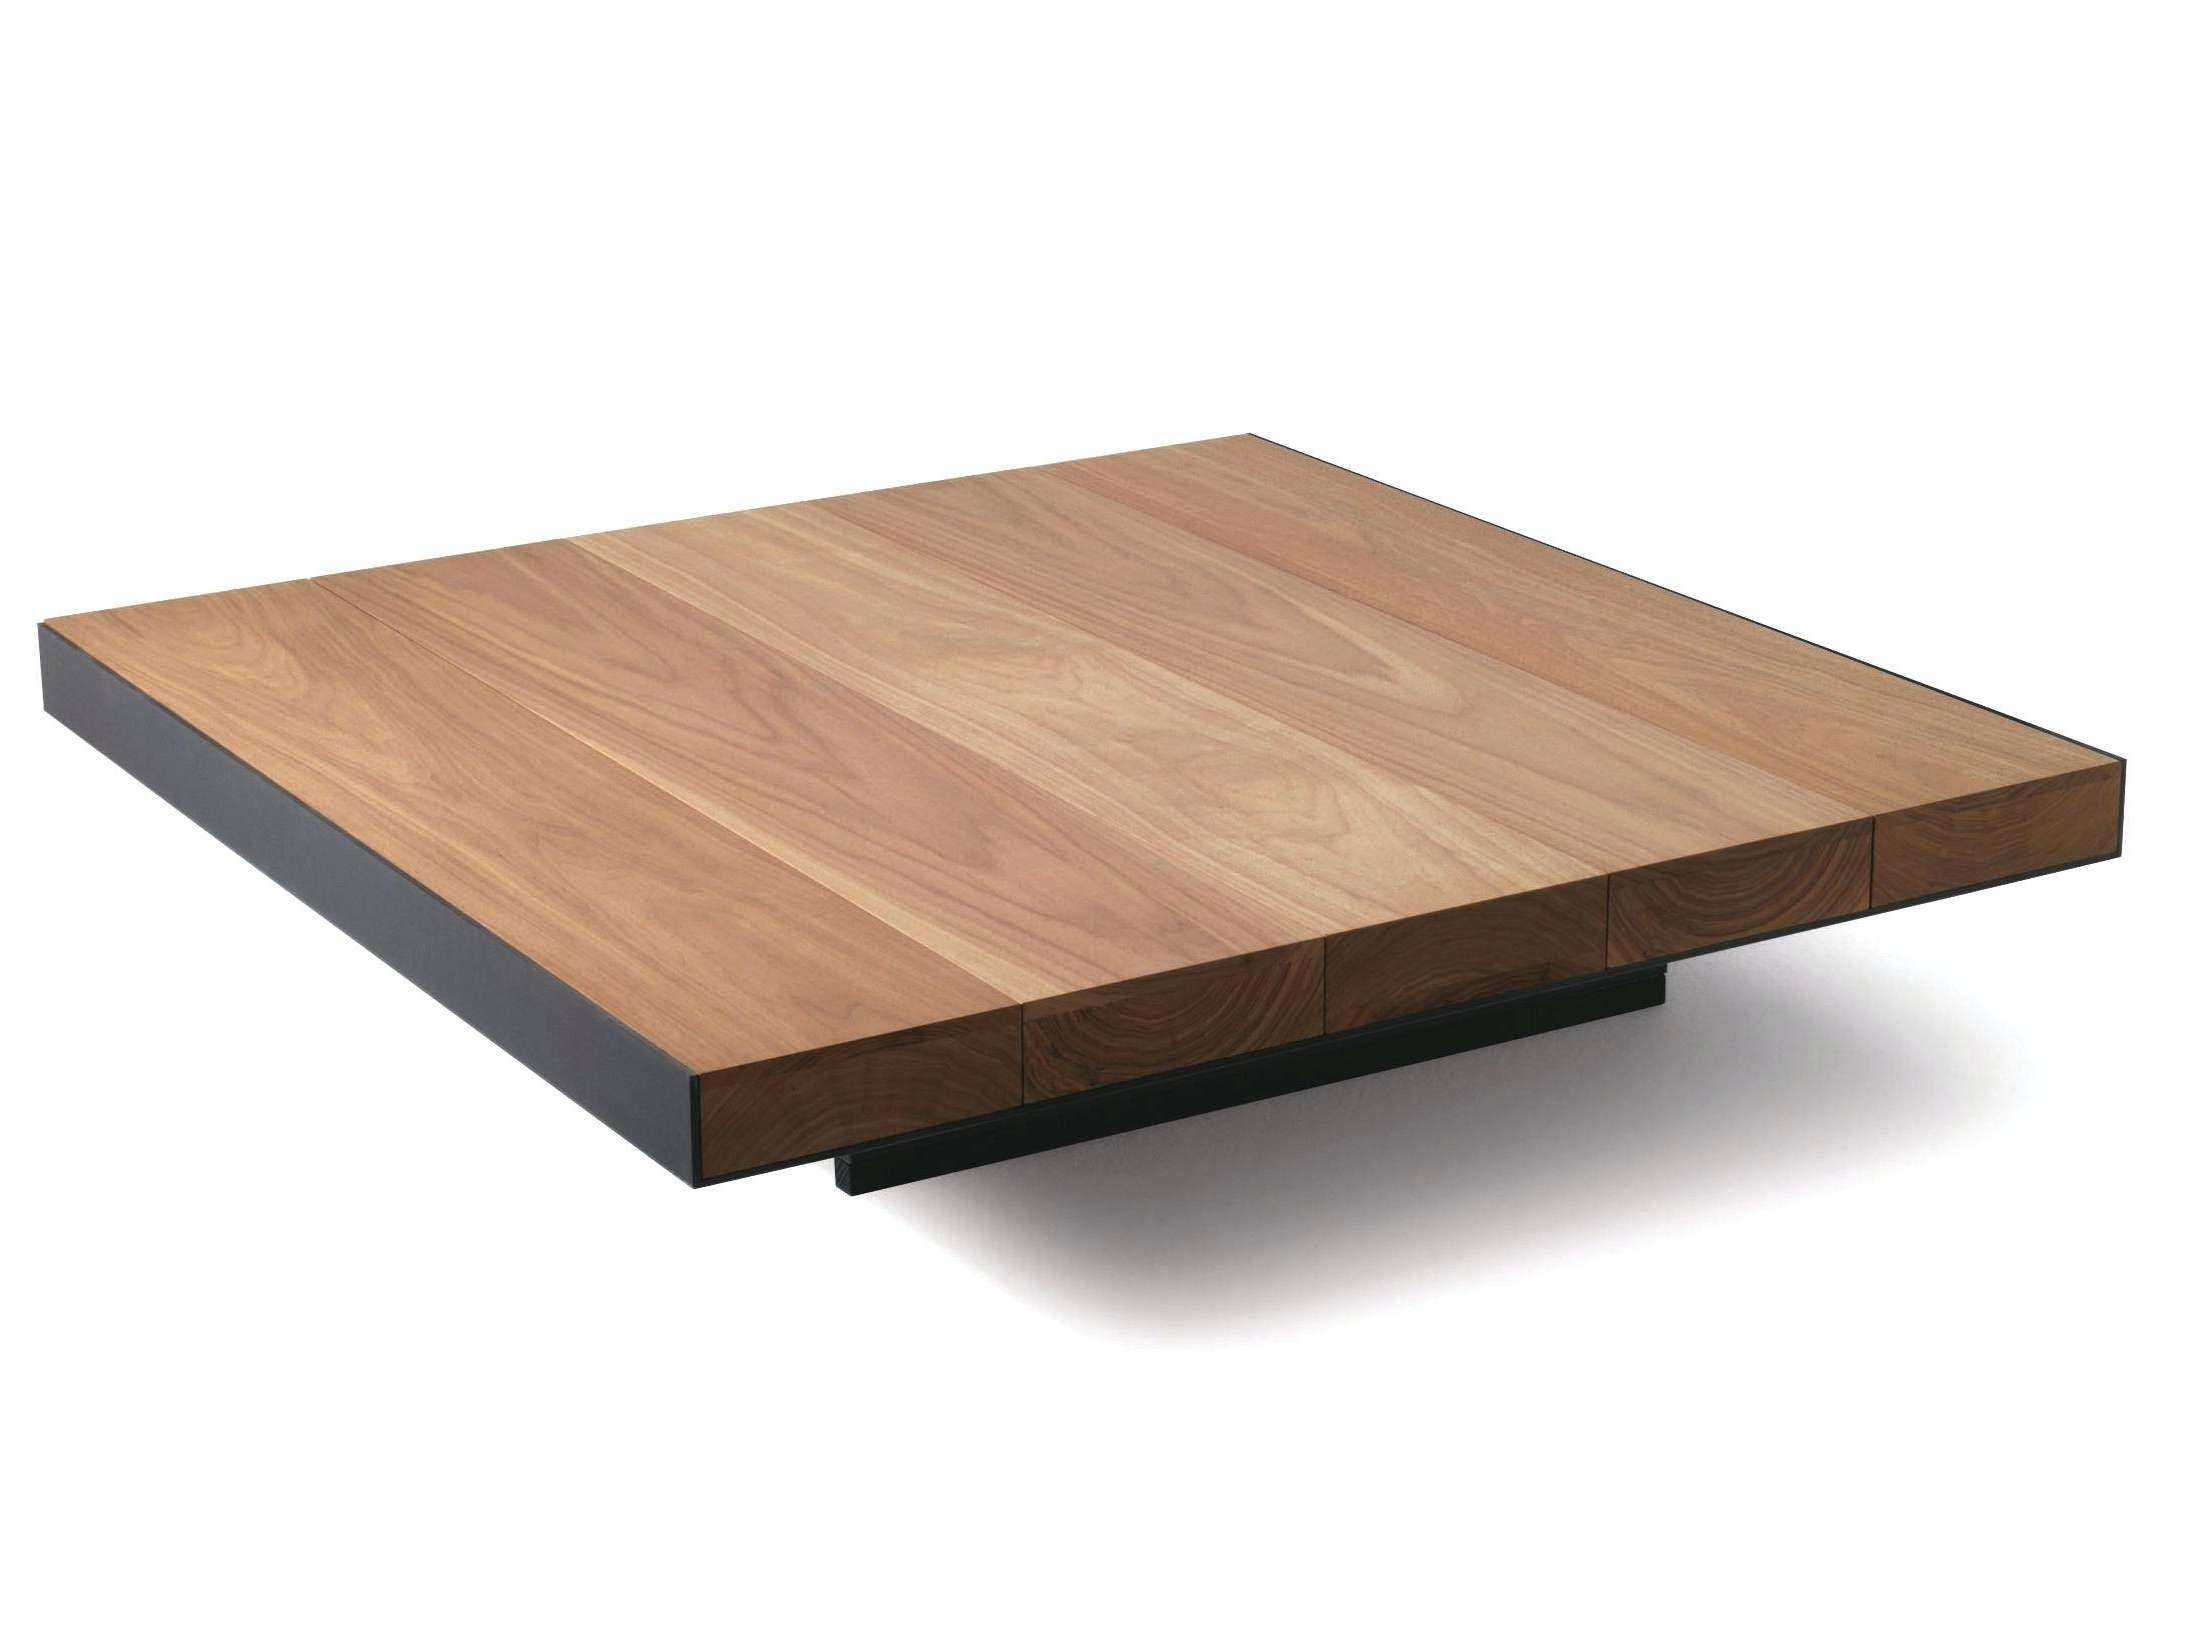 Most Current Large Low Wood Coffee Tables With Regard To Coffee Table 2017 Popular Large Low Wood Coffee Tables Square (View 10 of 20)